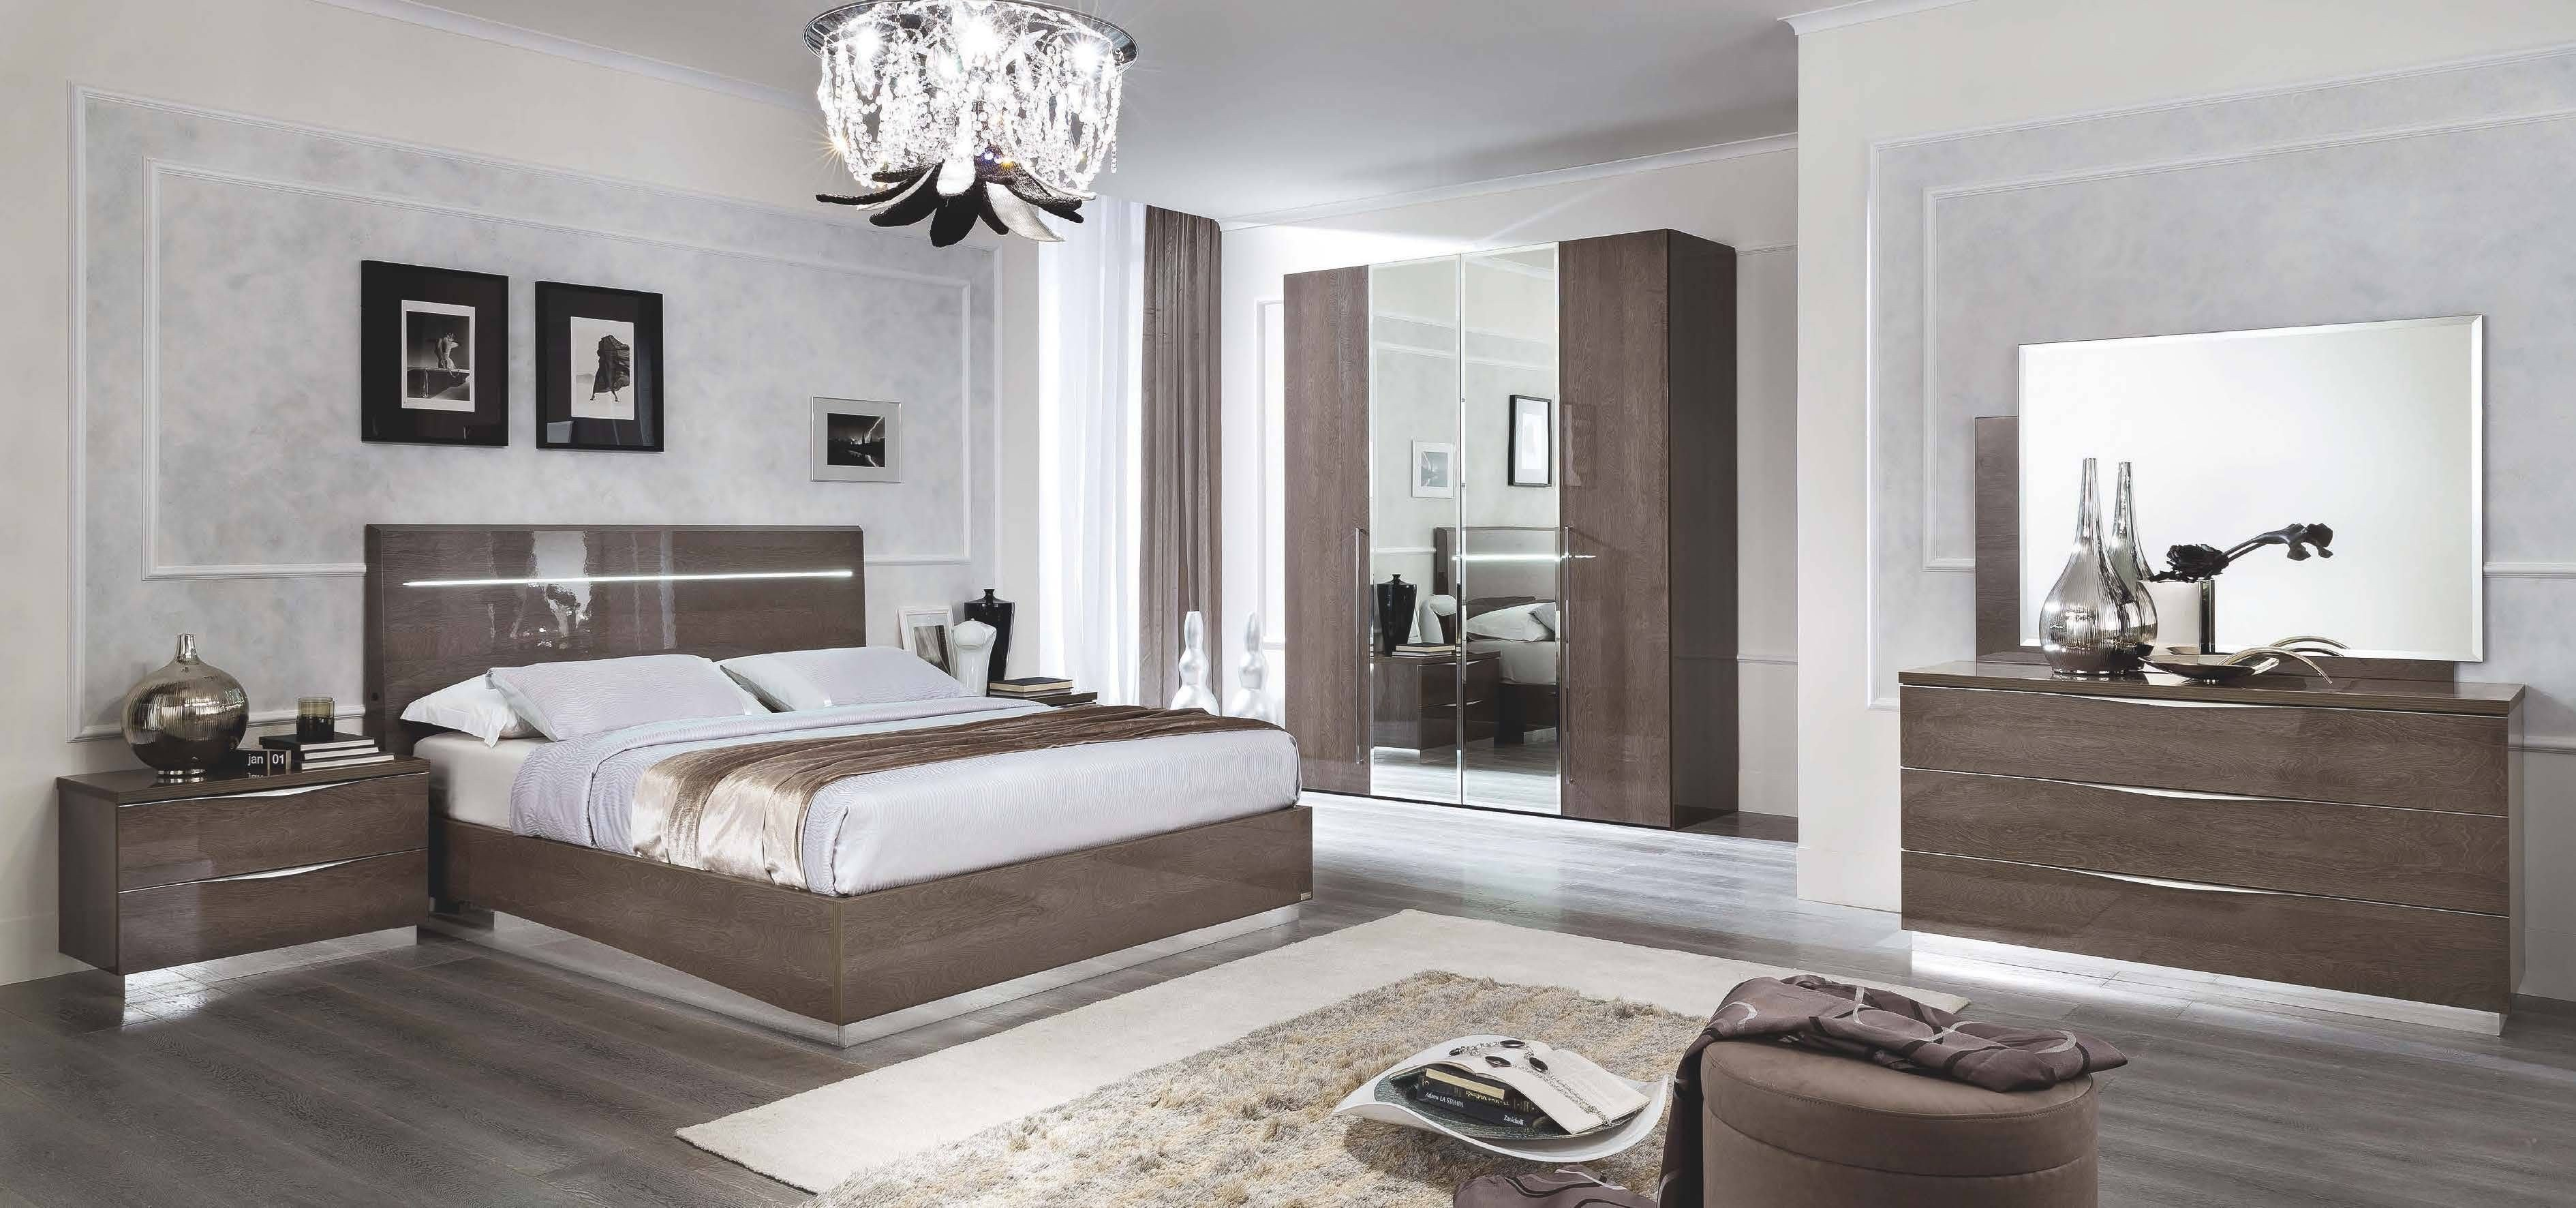 Classic Italian Bedroom Furniture Fresh Made In Italy Quality High End Bedroom Sets